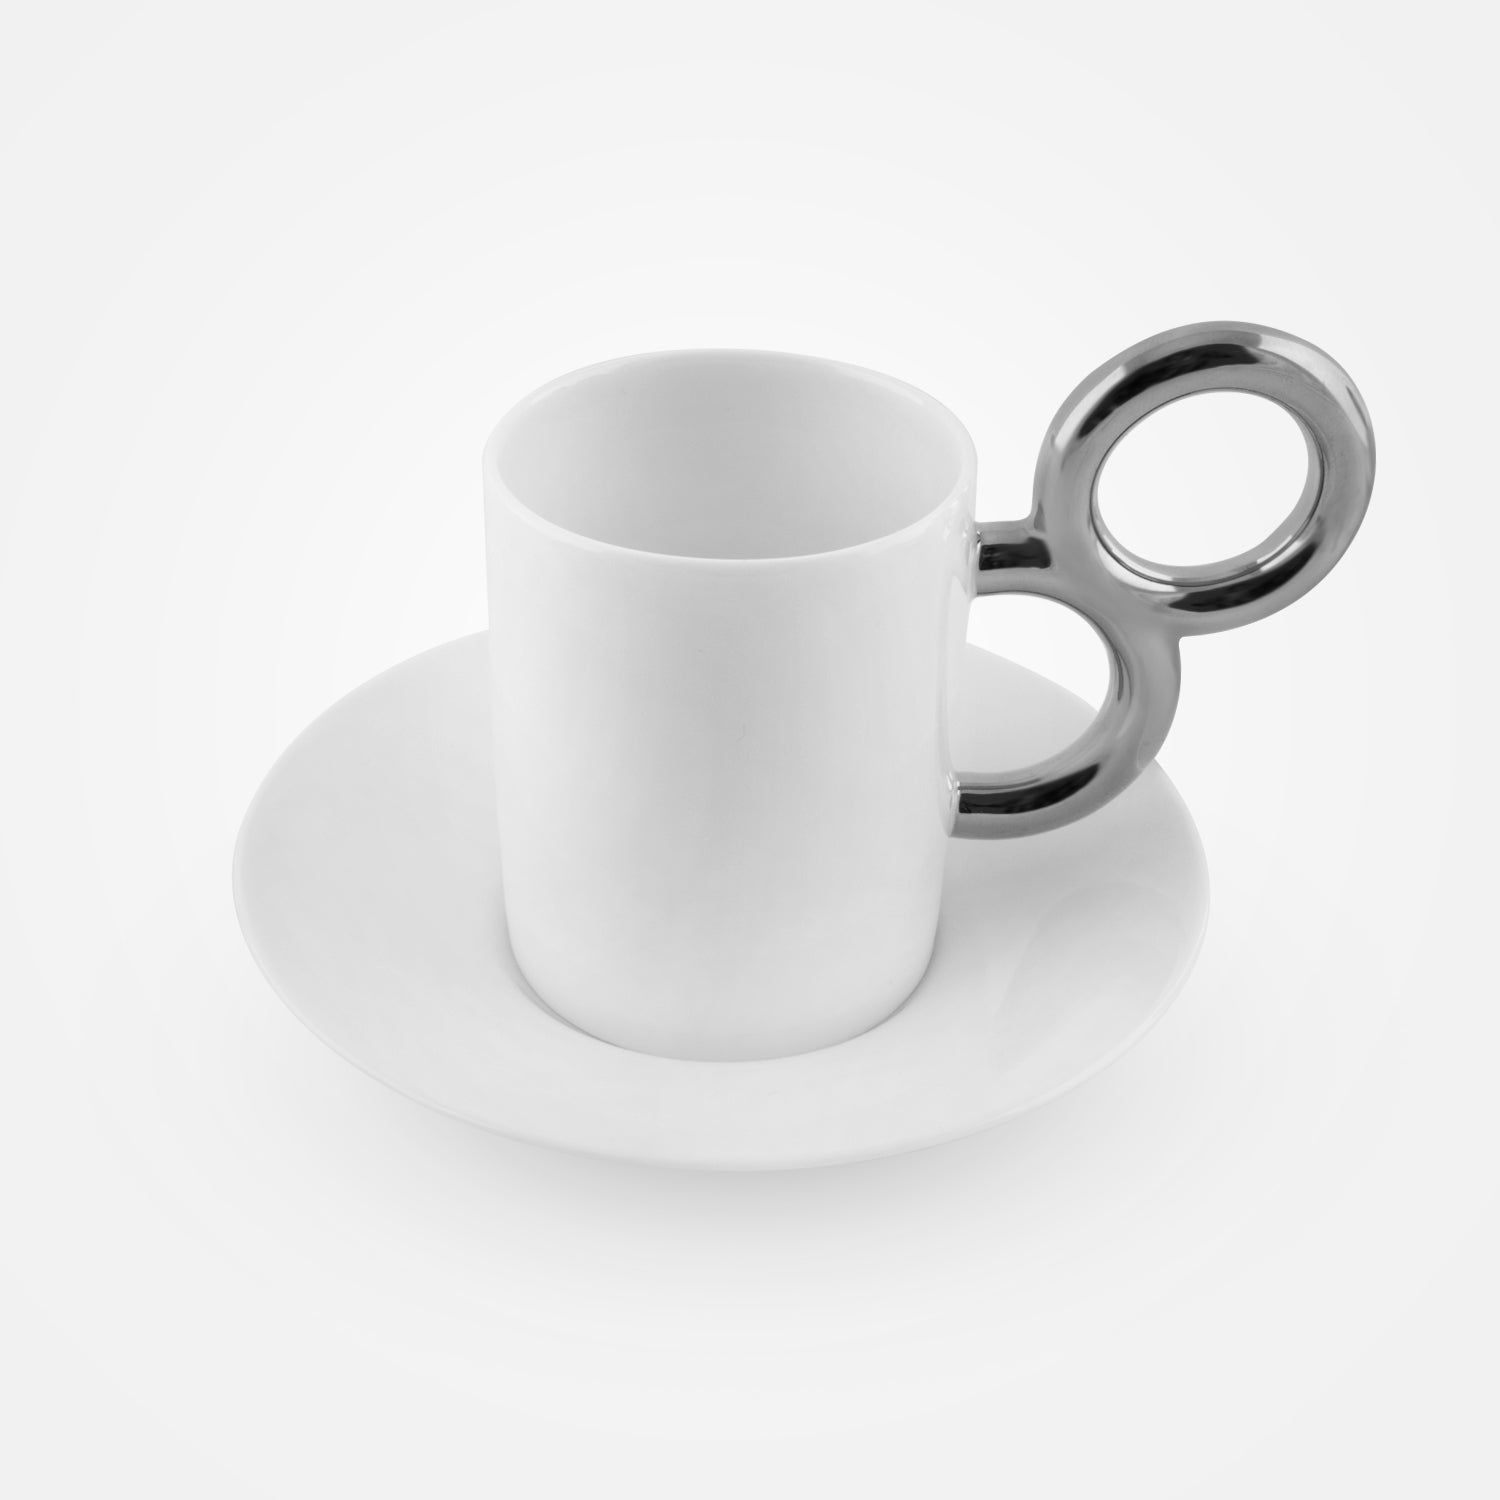 Maniériste Platinum-Plated Coffee Set by Extranorm - 2 Cups with 2 Saucers, Sugar and Creamer